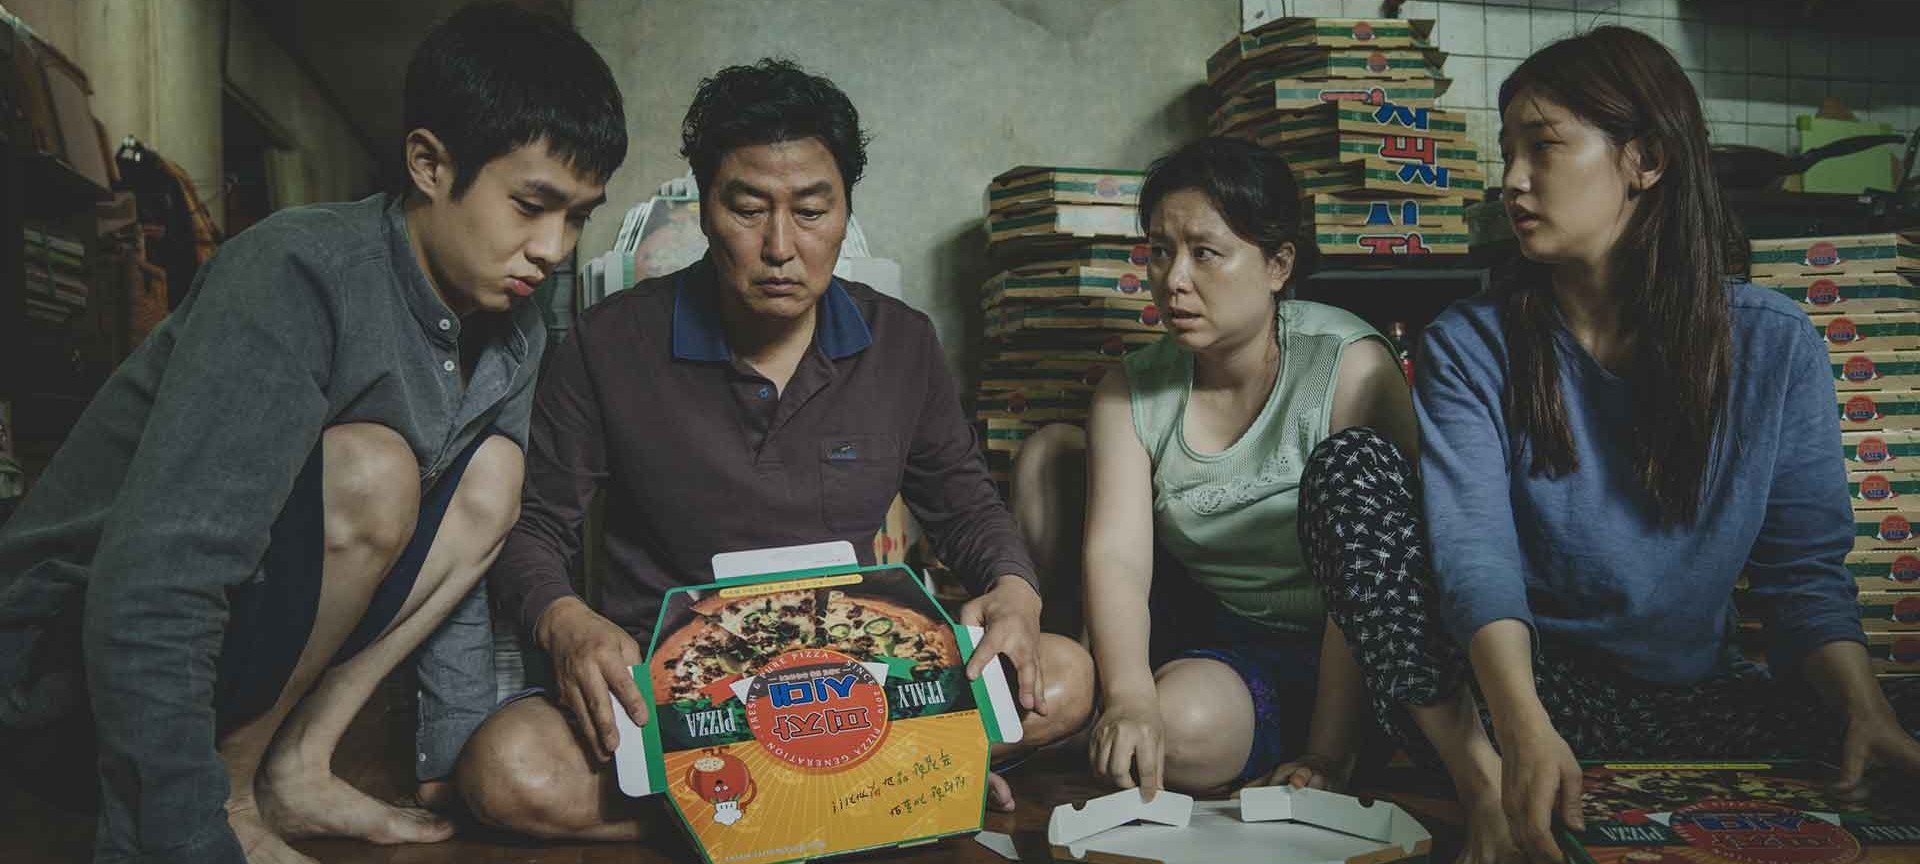 Films in London today: PARASITE at ArtHouse Crouch End + various venues (03 FEB).